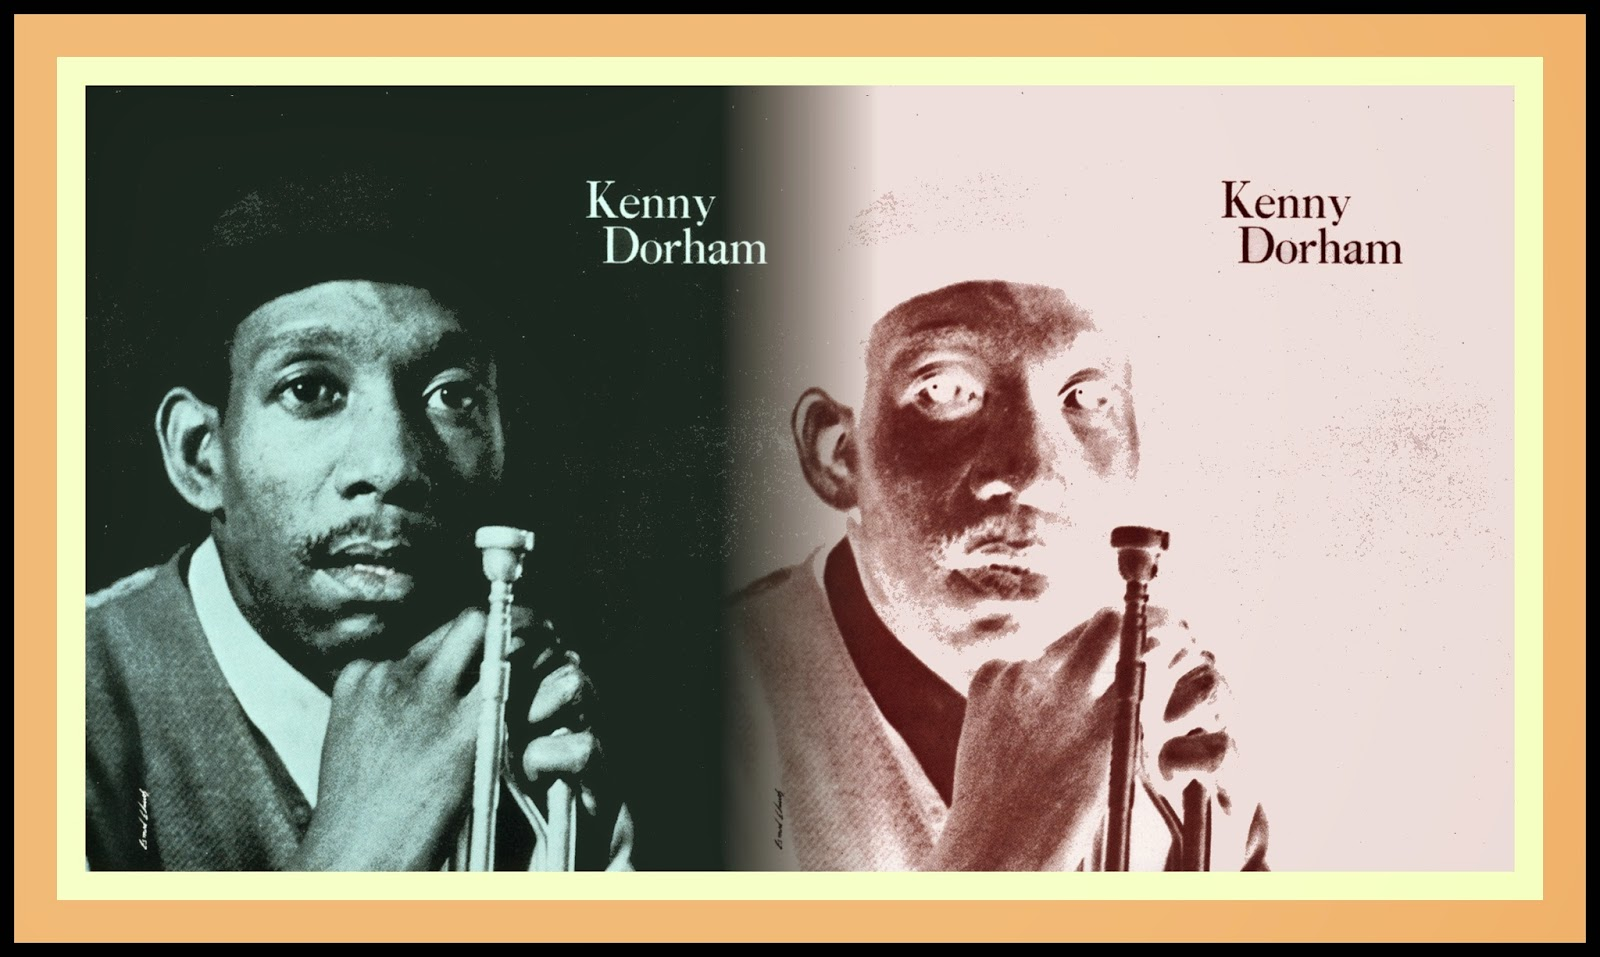 Jazz profiles kenny dorham underrated unnoticed and unseen from kenny dorham underrated unnoticed and unseen from the archives malvernweather Choice Image